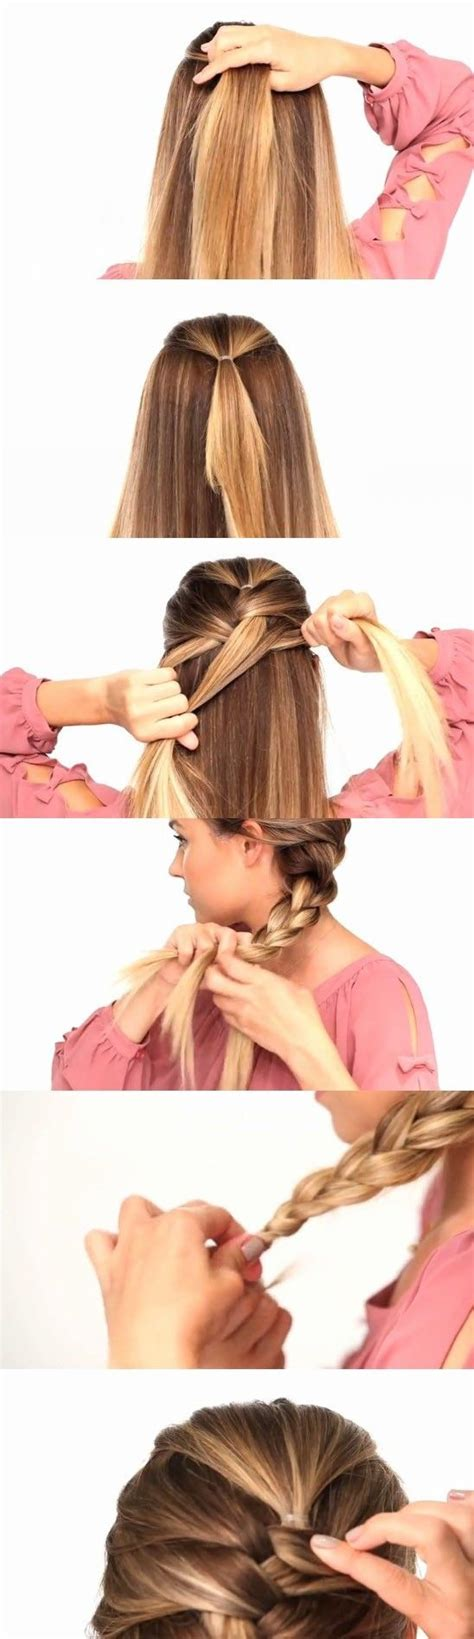 french braid pigtails instructions 14 best french braid pigtails images on pinterest braids